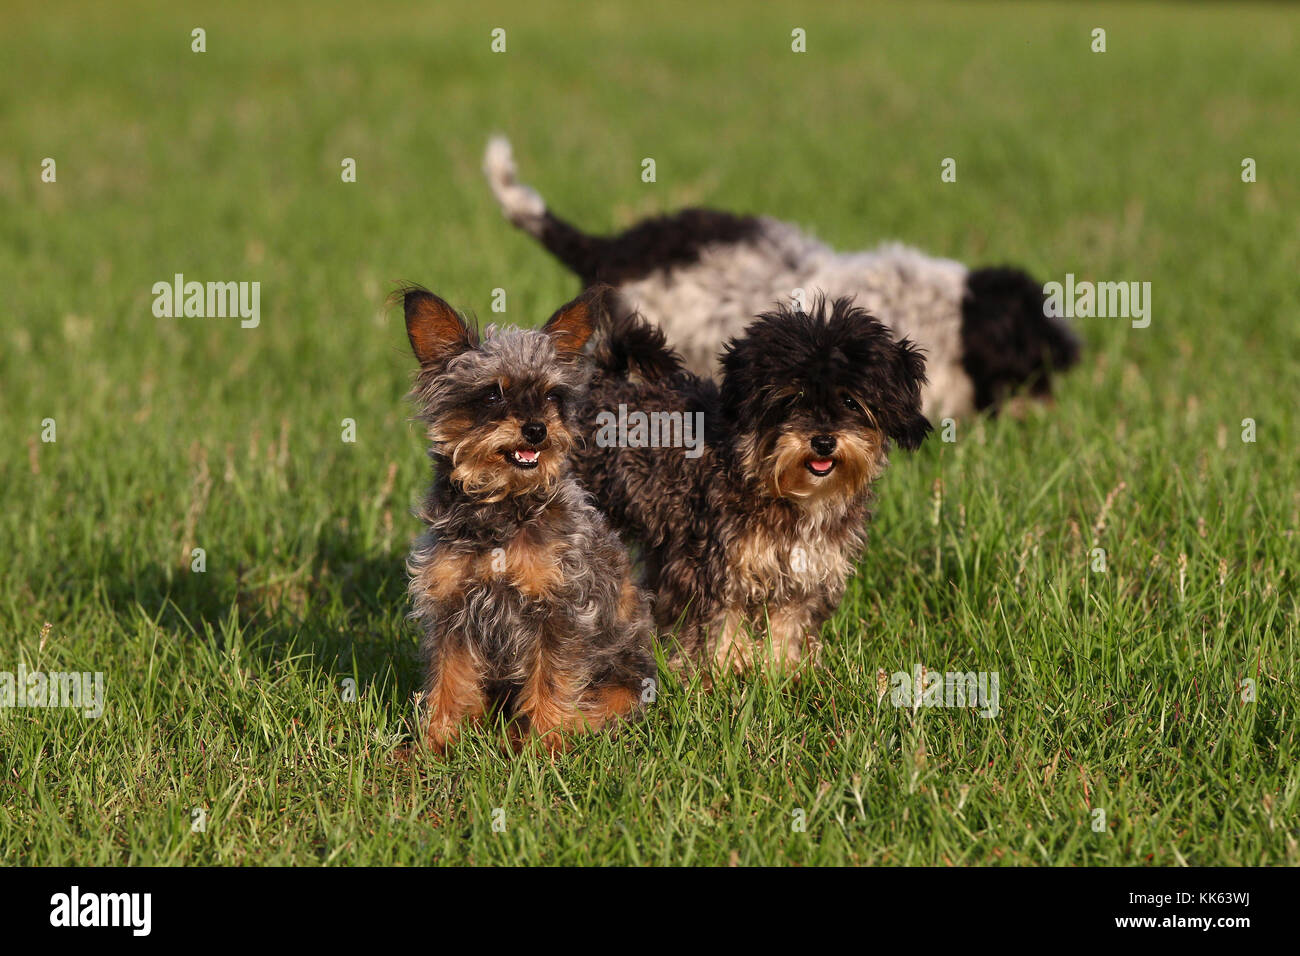 Yorkiepoo Yorkshire Terrier X Poodle Dogs Stock Photo 166706558 Alamy